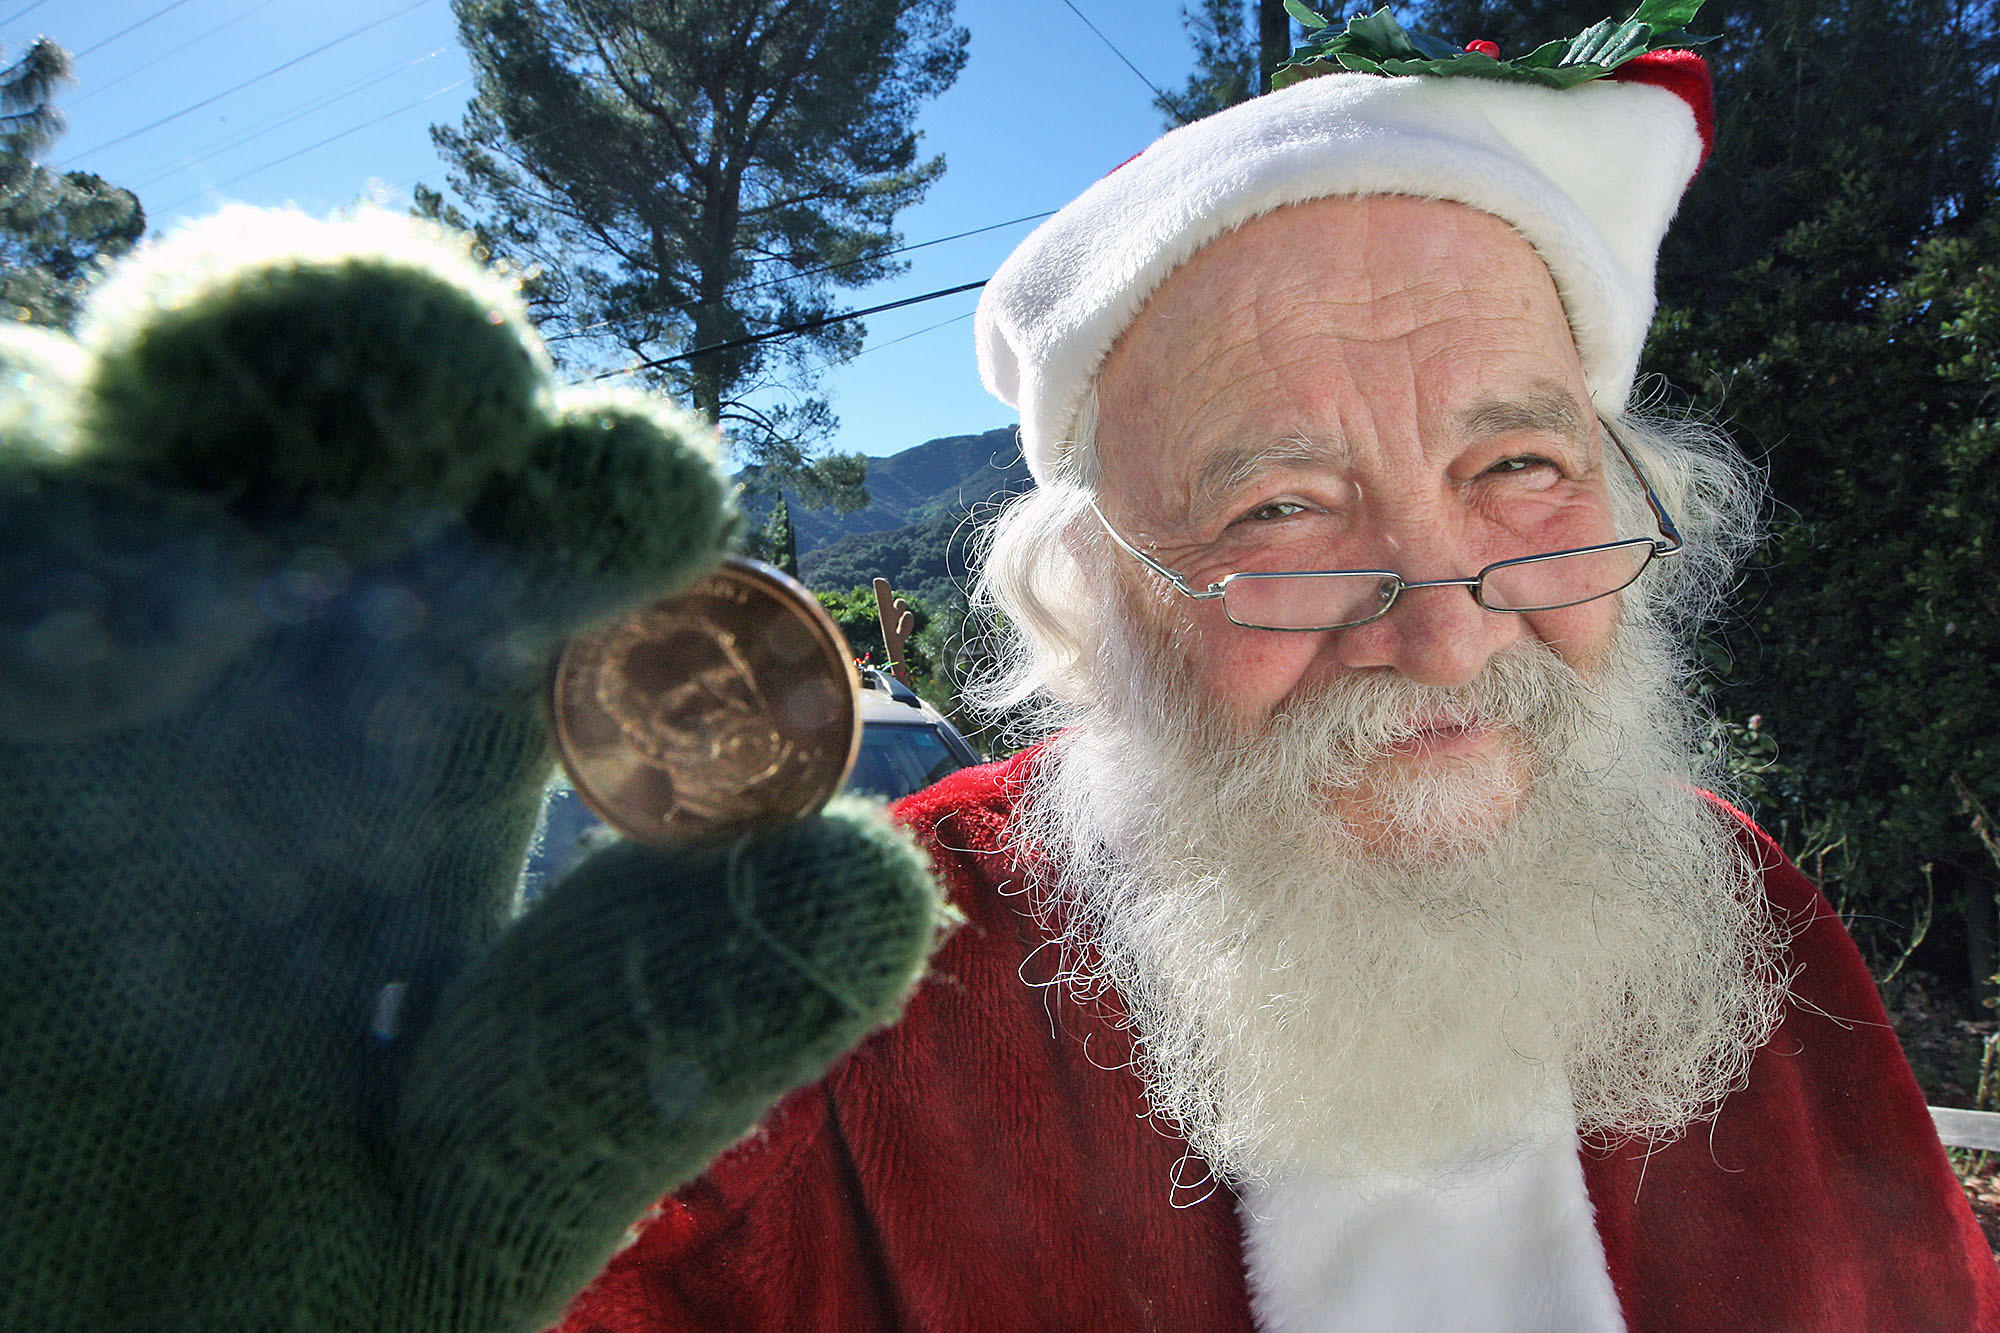 La Crescenta resident Joe Mandoky dresses up every year as Santa and hands out golden dollars to people who say they believe in Santa Claus. Photographed on Monday, December 23, 2013.